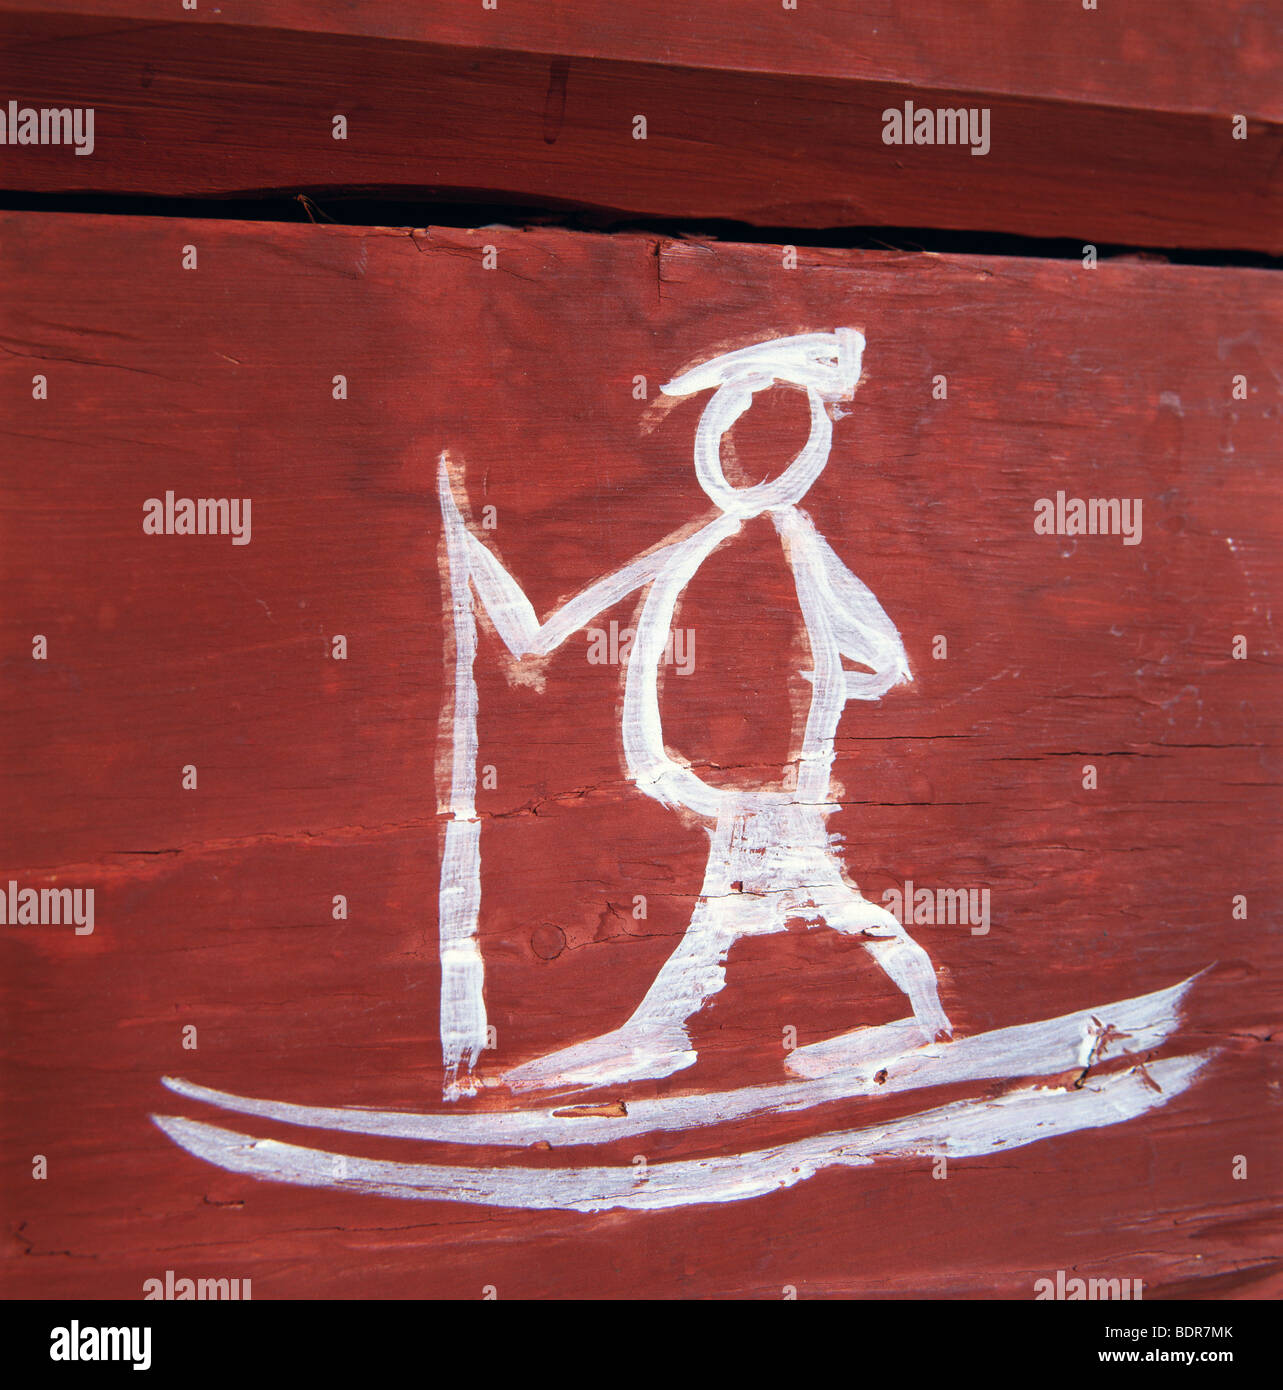 Painted skier on a wall, Sweden. - Stock Image